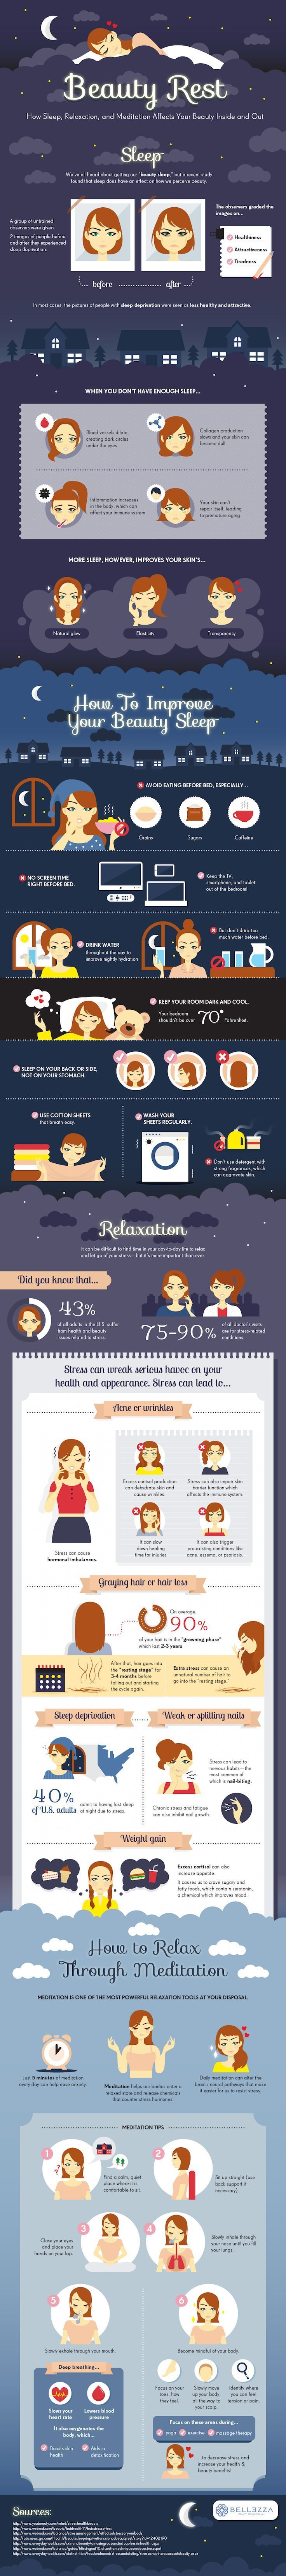 Beauty sleep is not a myth! As vain as it may sound, the benefits of beauty rest are very real.